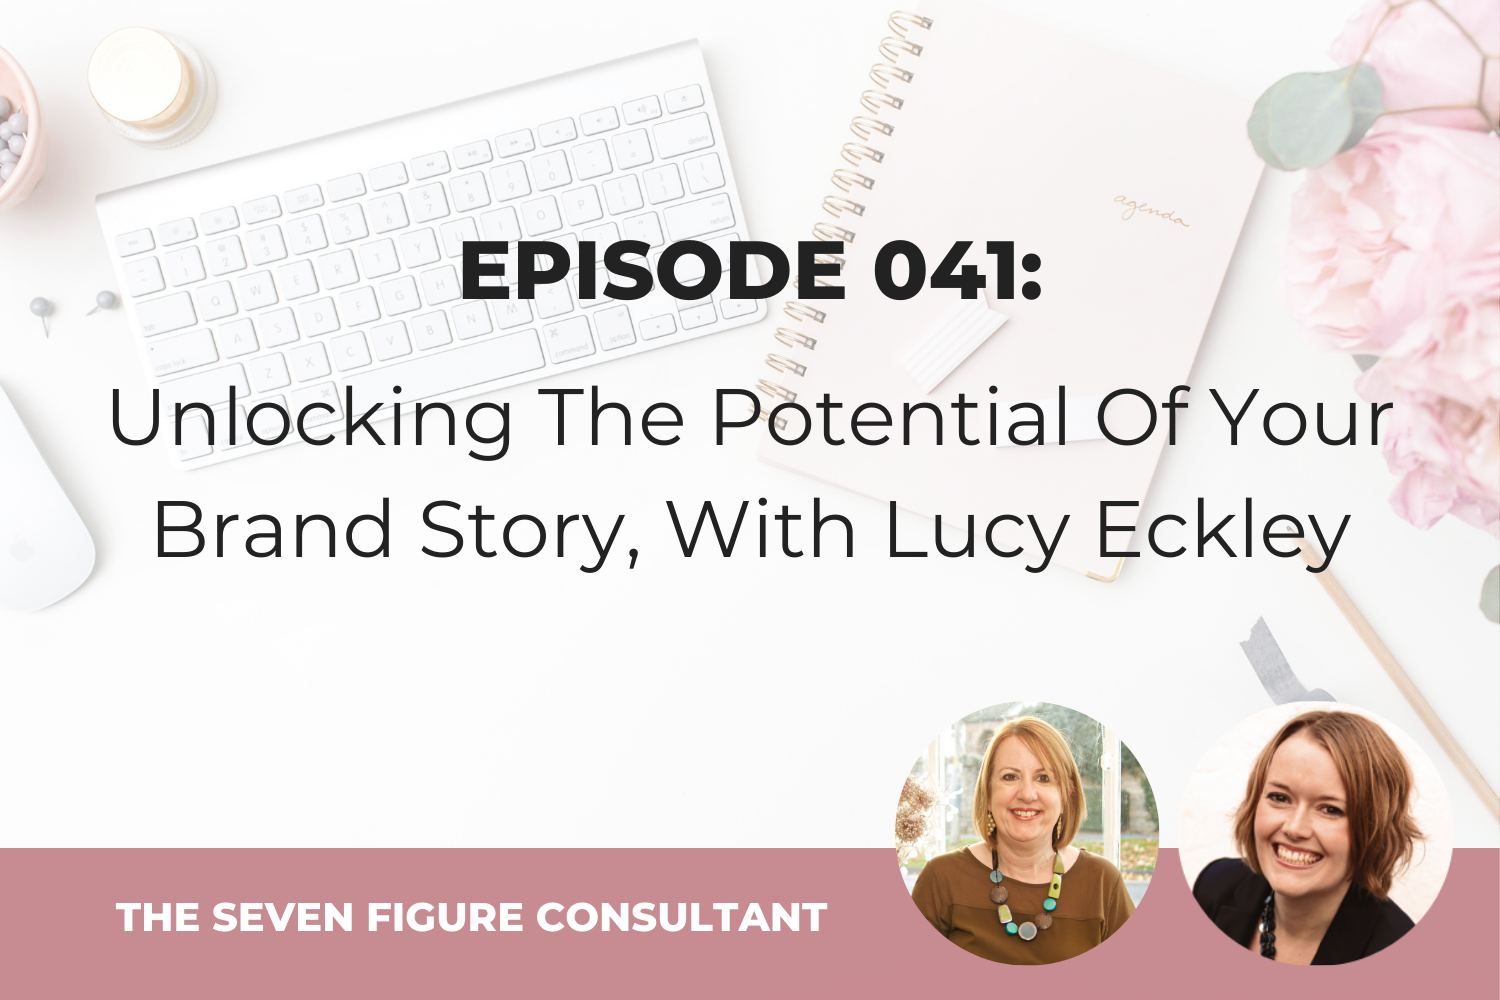 Episode 041: Unlocking The Potential Of Your Brand Story, With Lucy Eckley